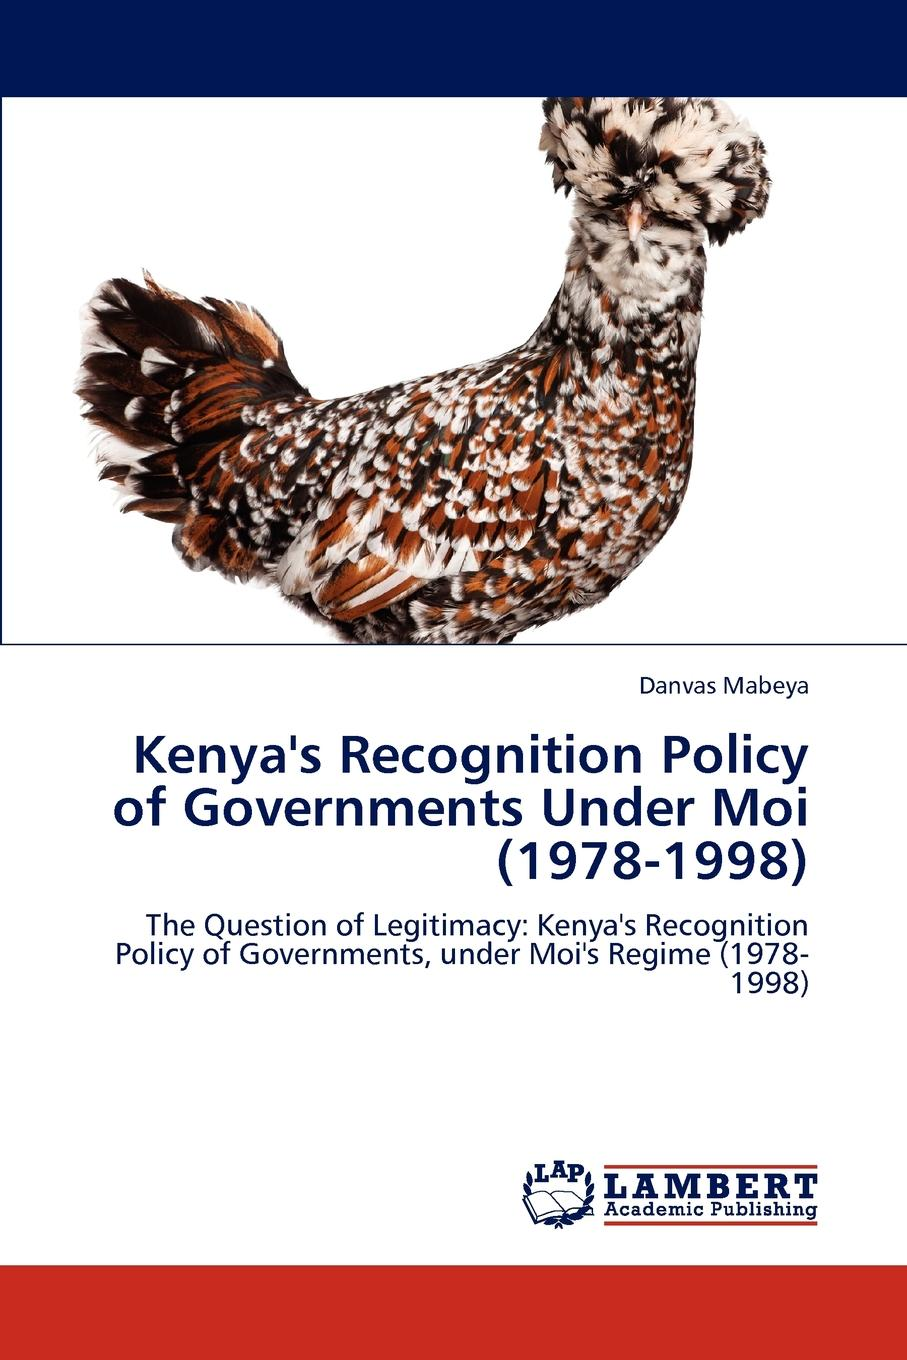 Danvas Mabeya Kenya.s Recognition Policy of Governments Under Moi (1978-1998) paul opondo fishing policy in colonial kenya lake victoria 1880 1978